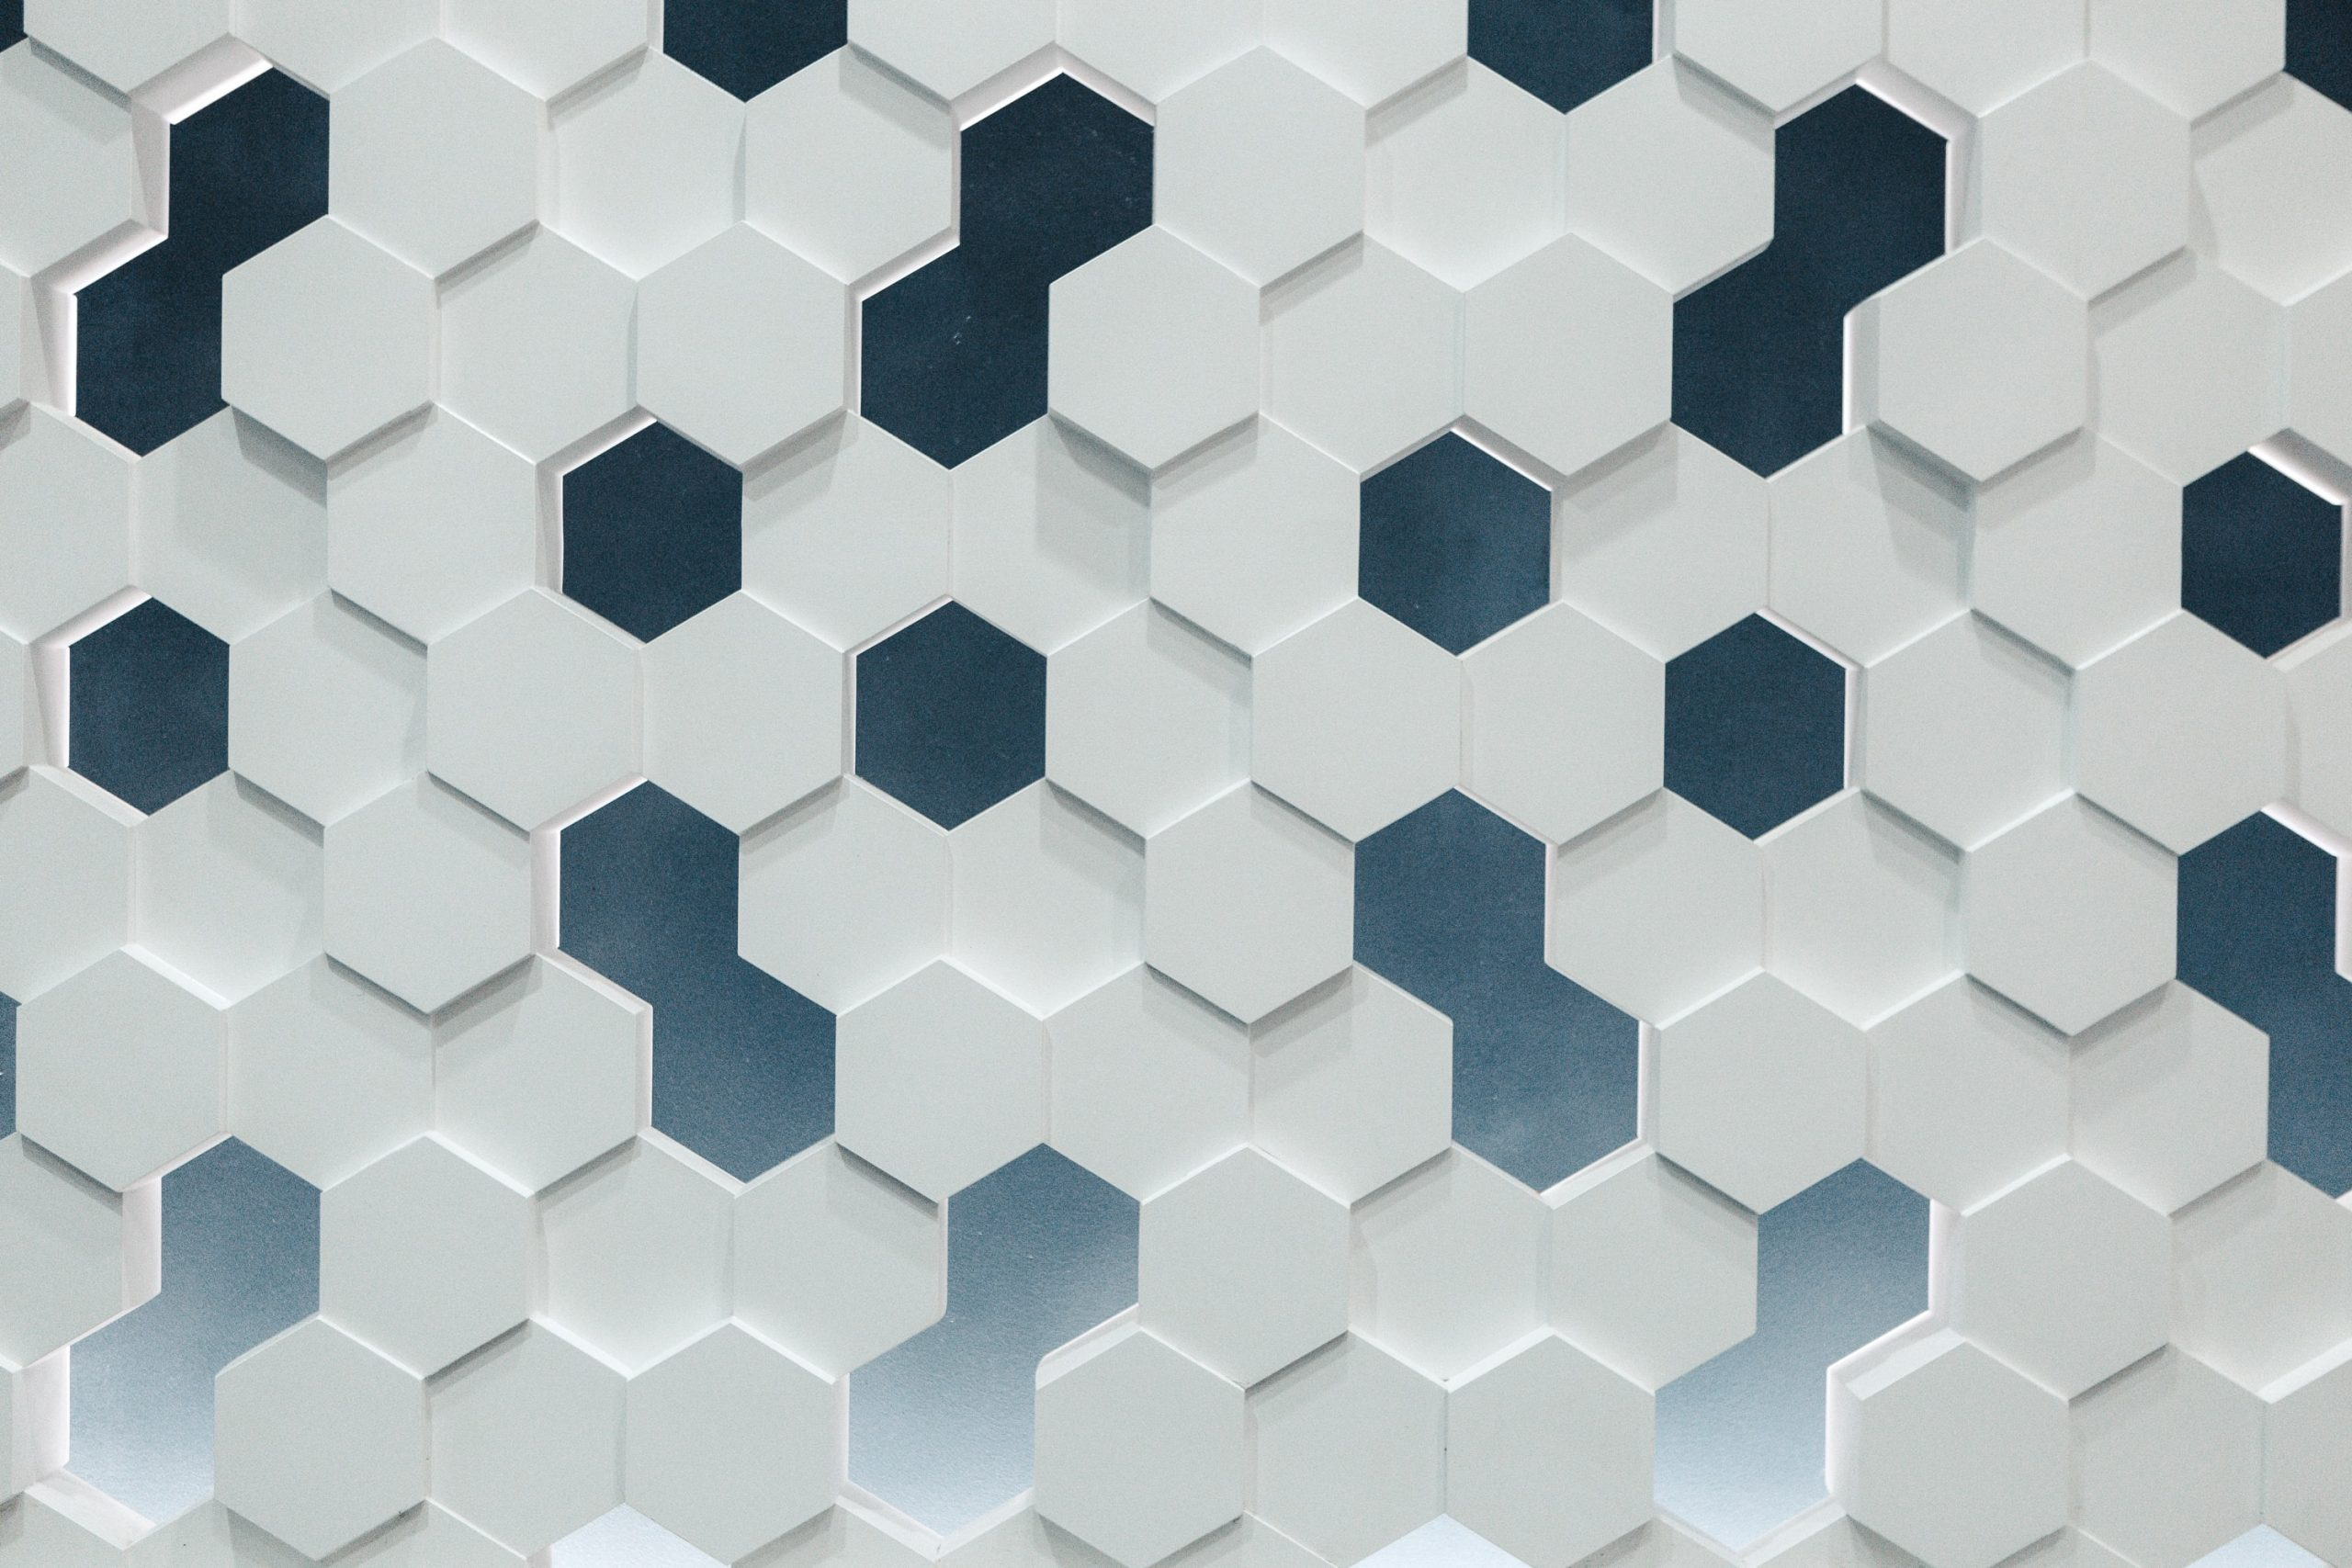 A special choice for all the trend setters of the market. Honeycomb designs ooze quality and standard.